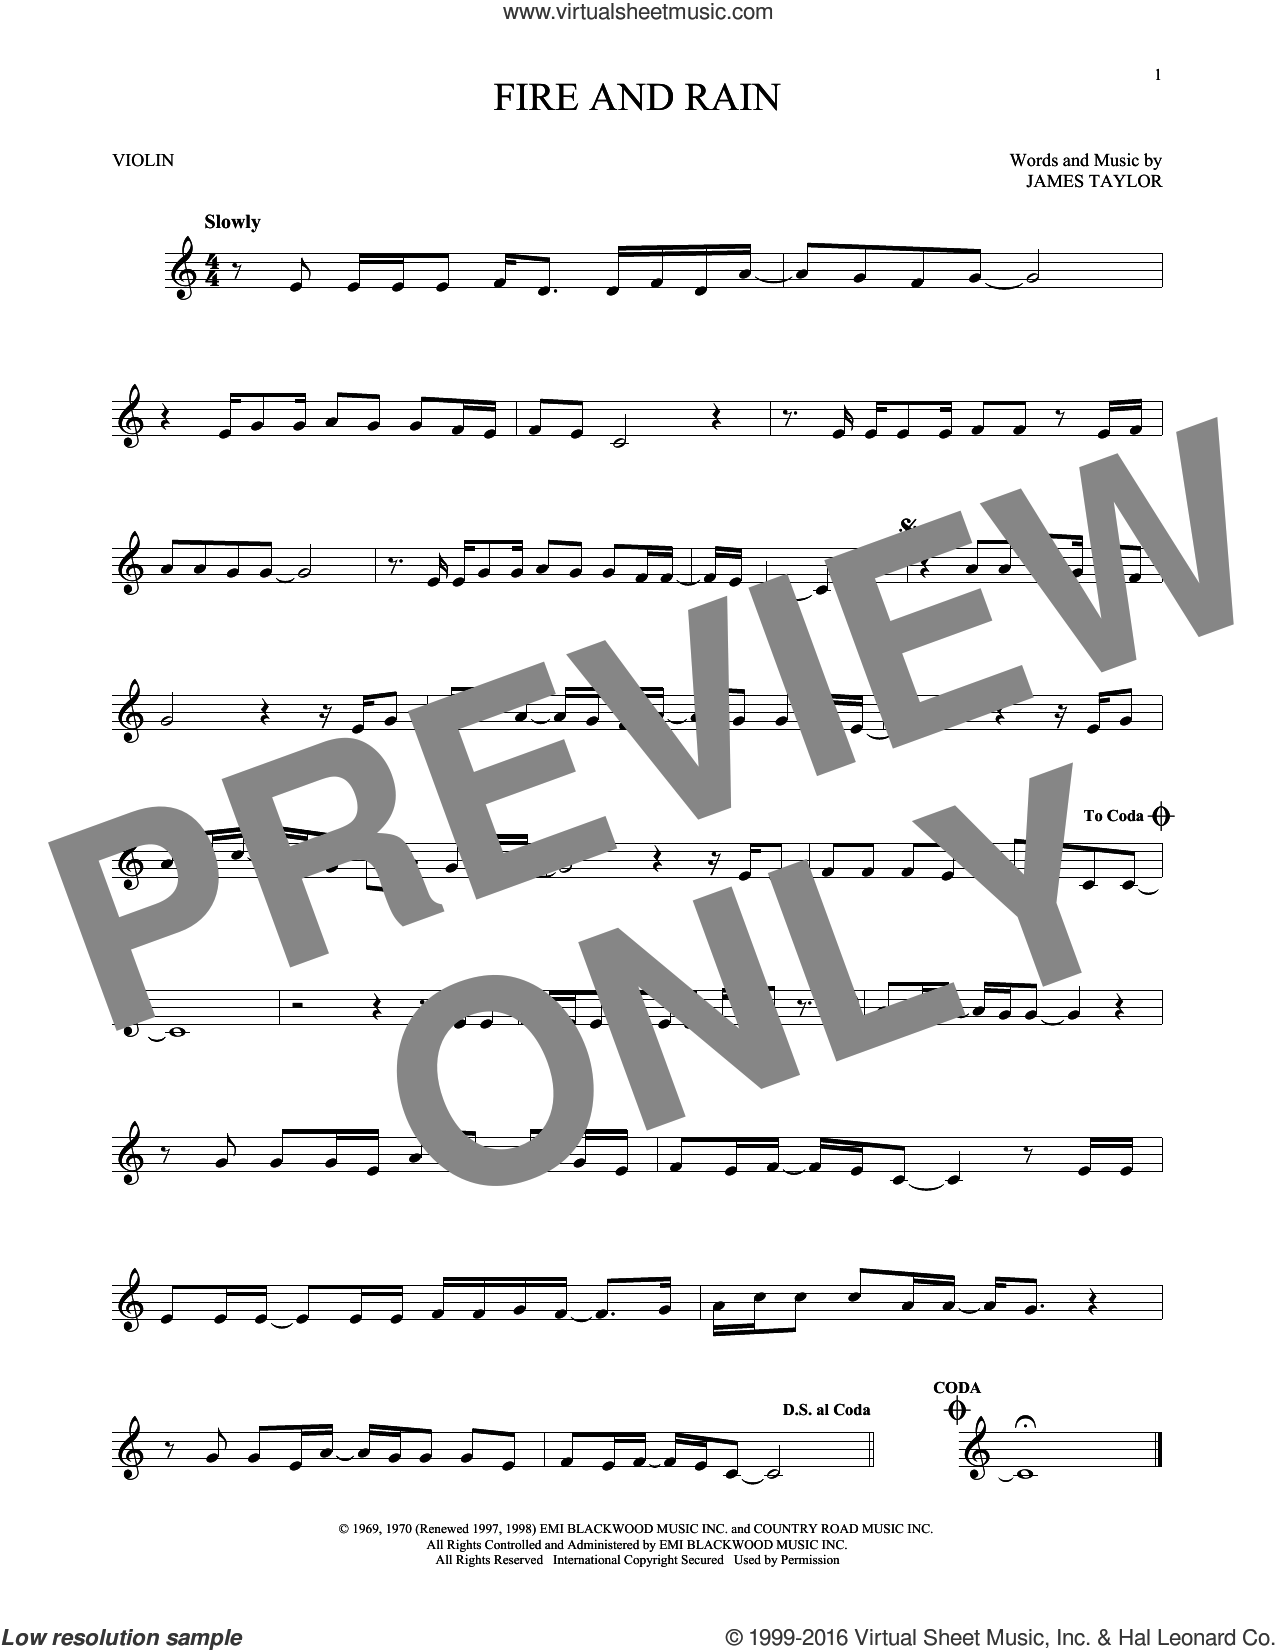 Fire And Rain sheet music for violin solo by James Taylor. Score Image Preview.